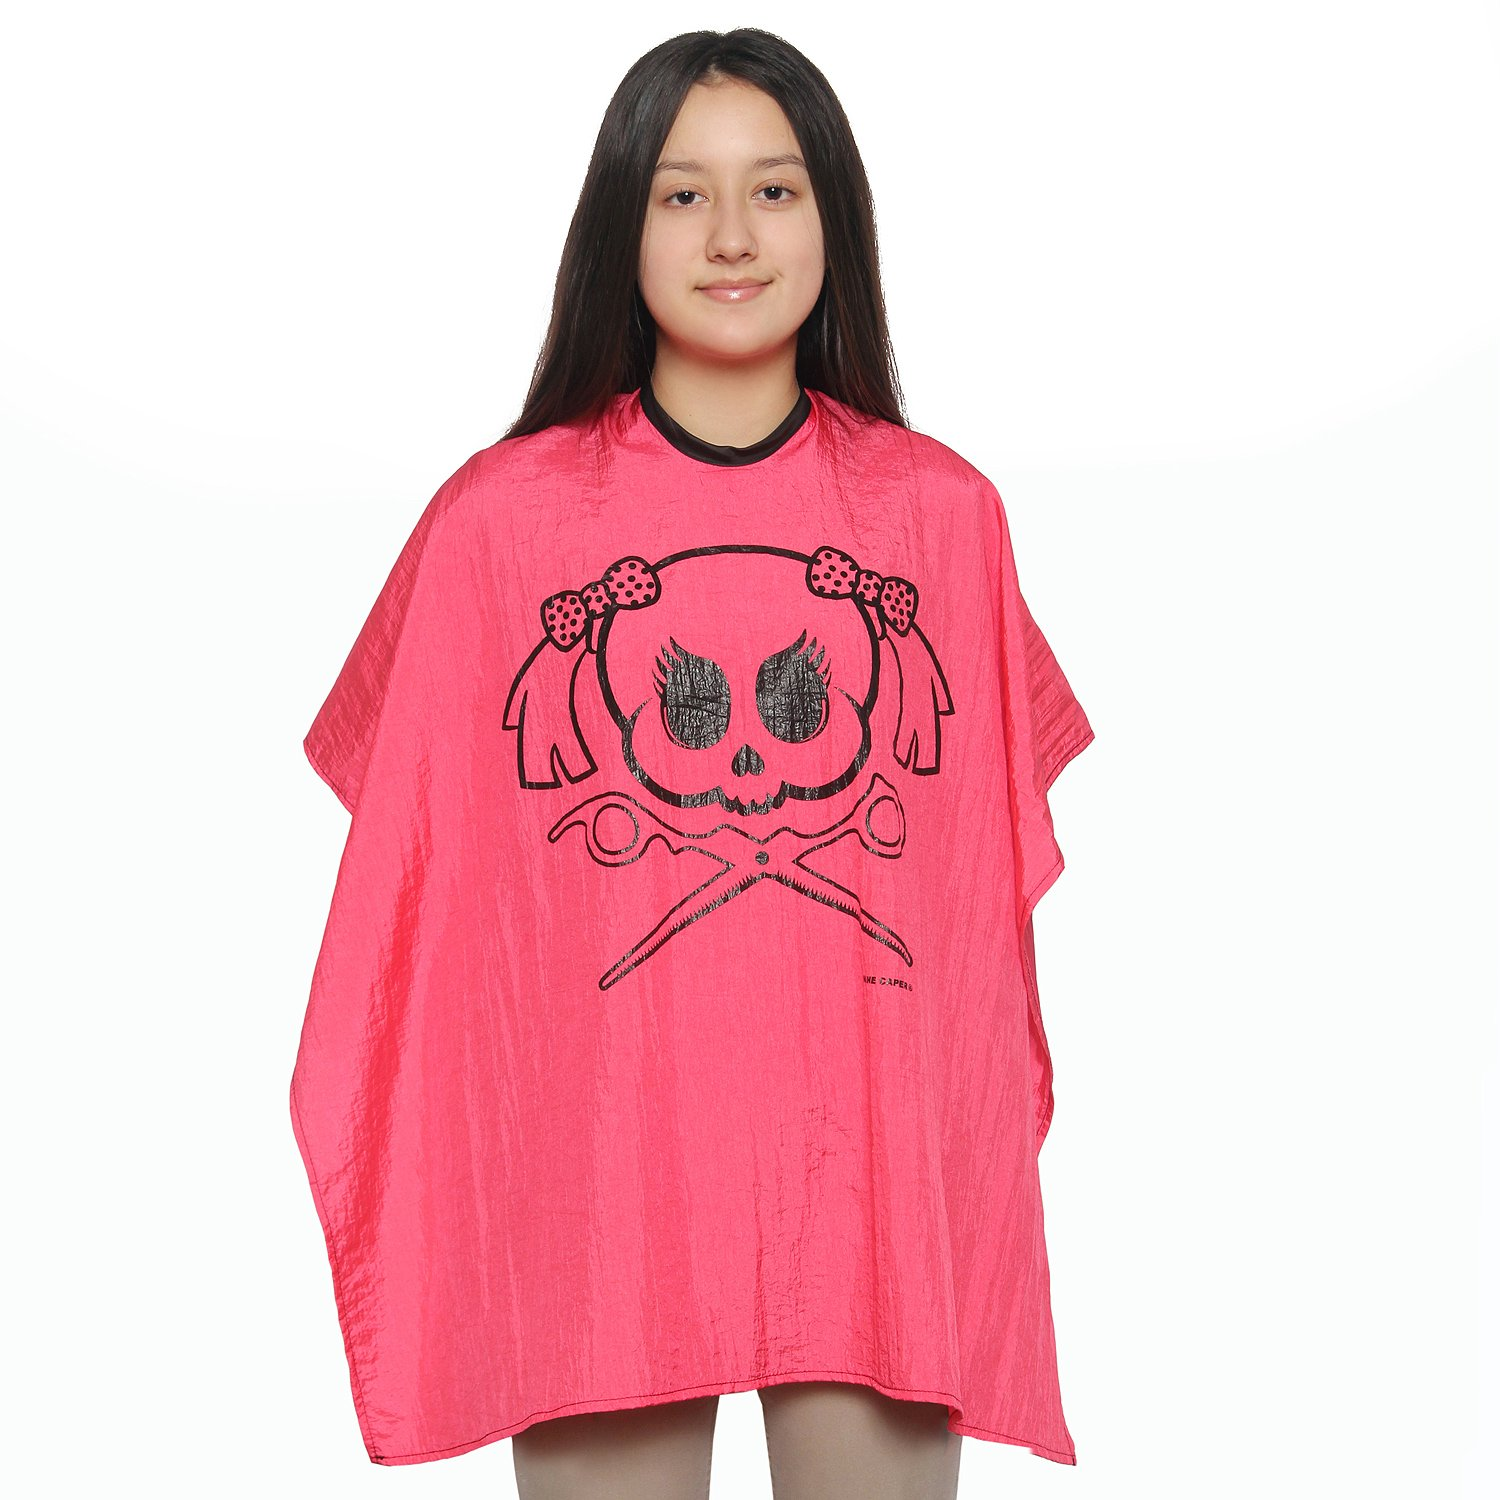 Kid's Skull Quality Salon Cape - Large Crinkle Nylon Material Light Weight Extra Durable Protection Child Barber Cape (Pink)